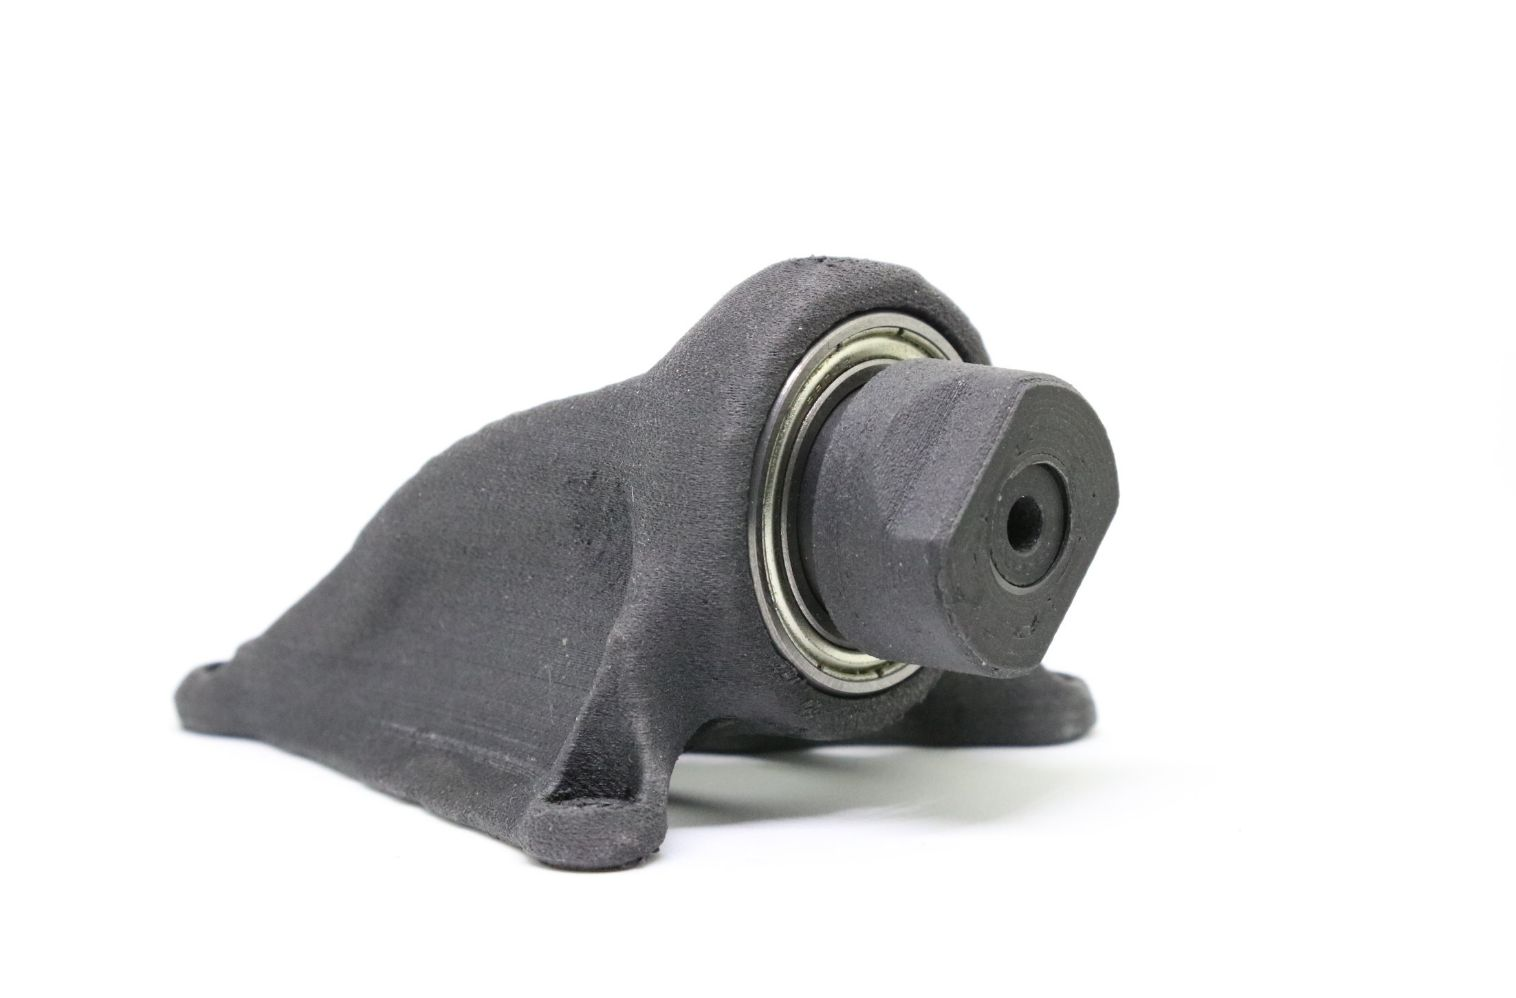 Bearing Housing Apuim CFR PEEK